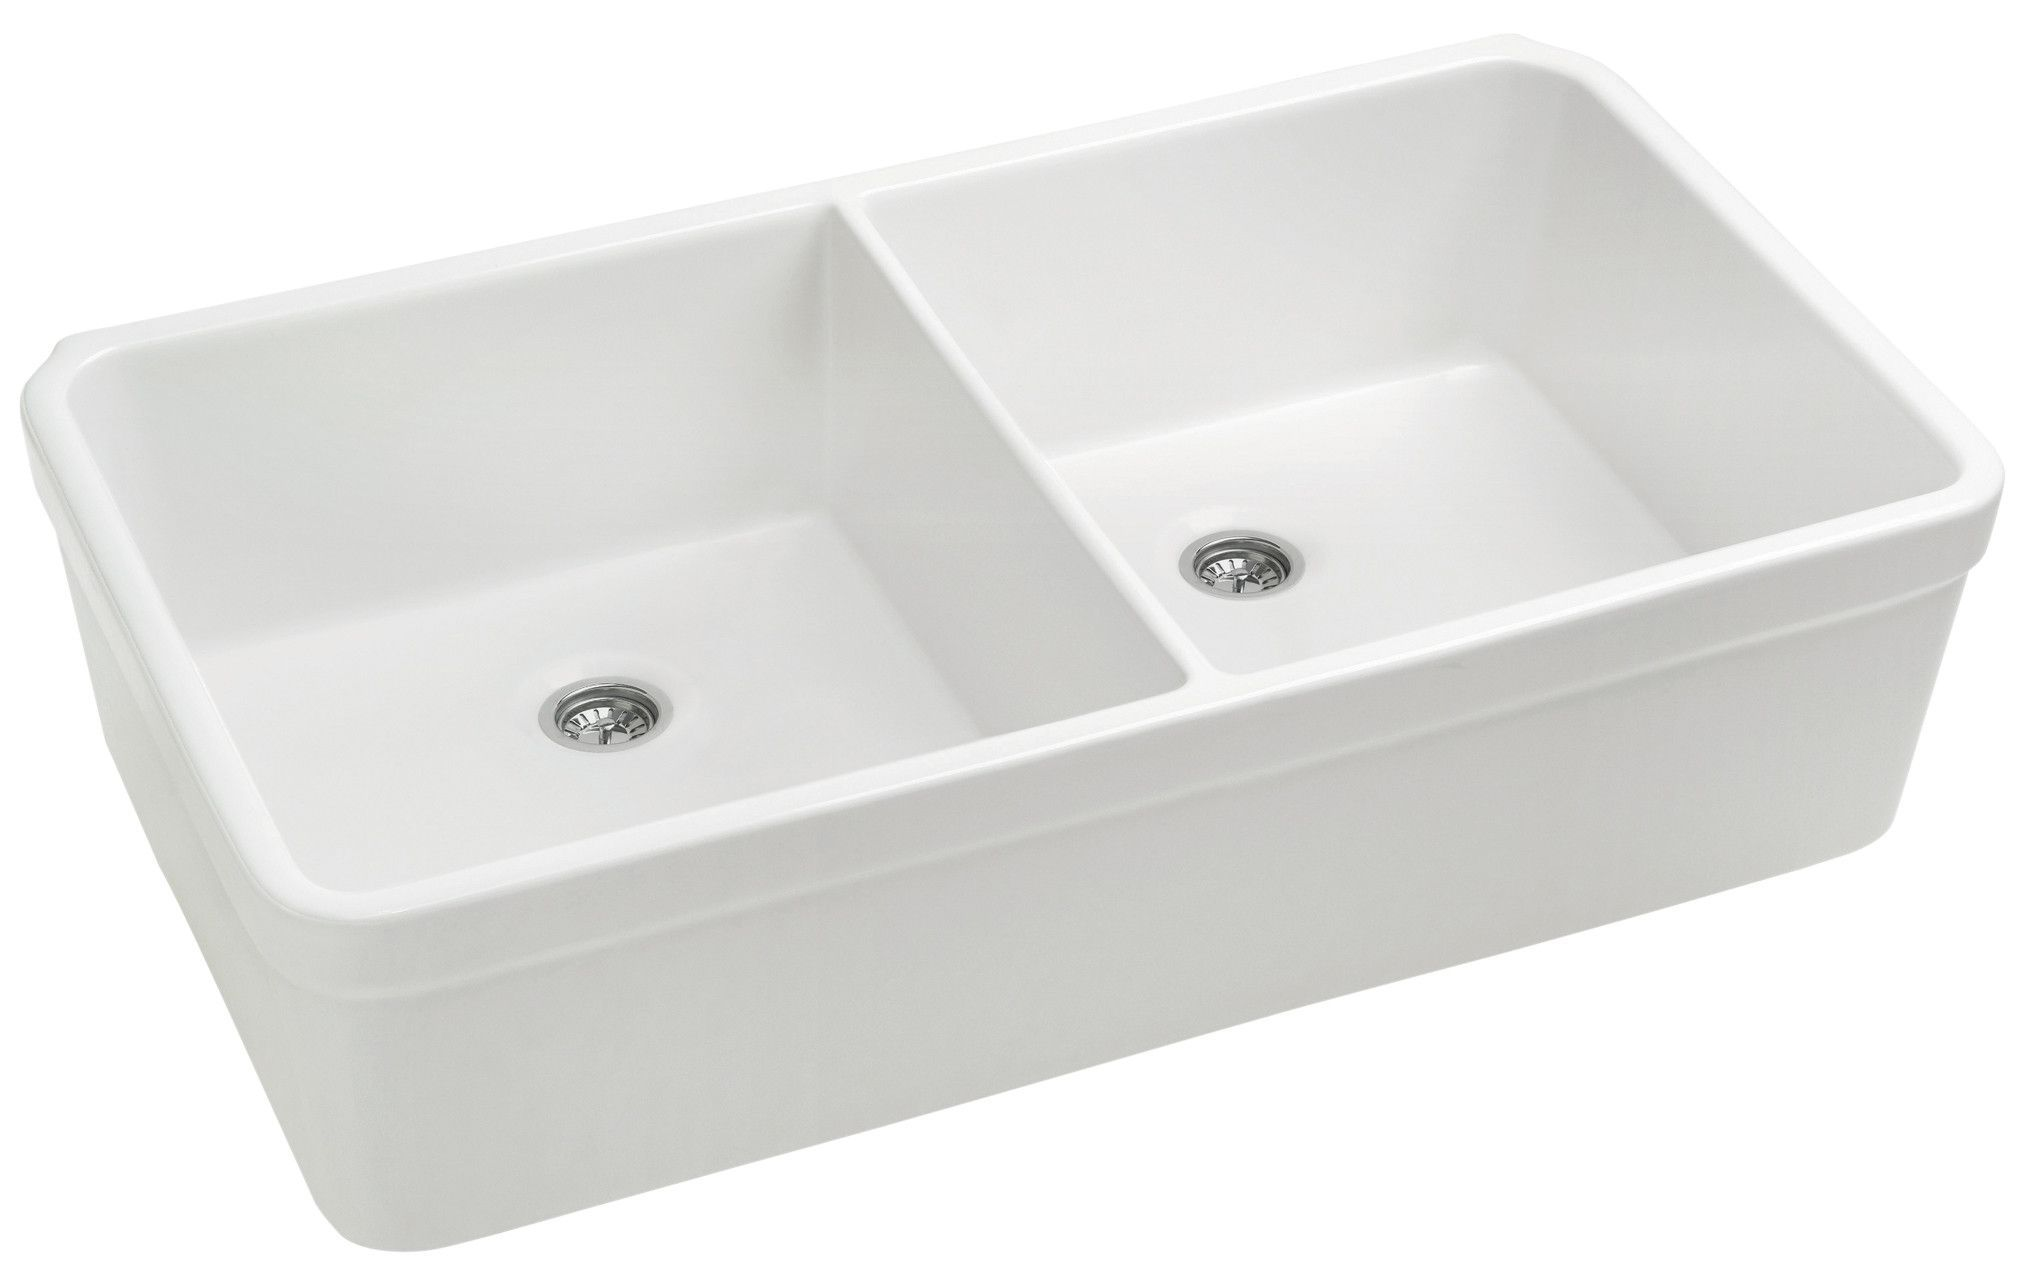 Buy Whitehaus Whb5122 Double Bowl Fireclay Sink With Smooth Apron And 2 Lip Double Bowl Kitchen Sink Fireclay Farmhouse Sink Fireclay Sink